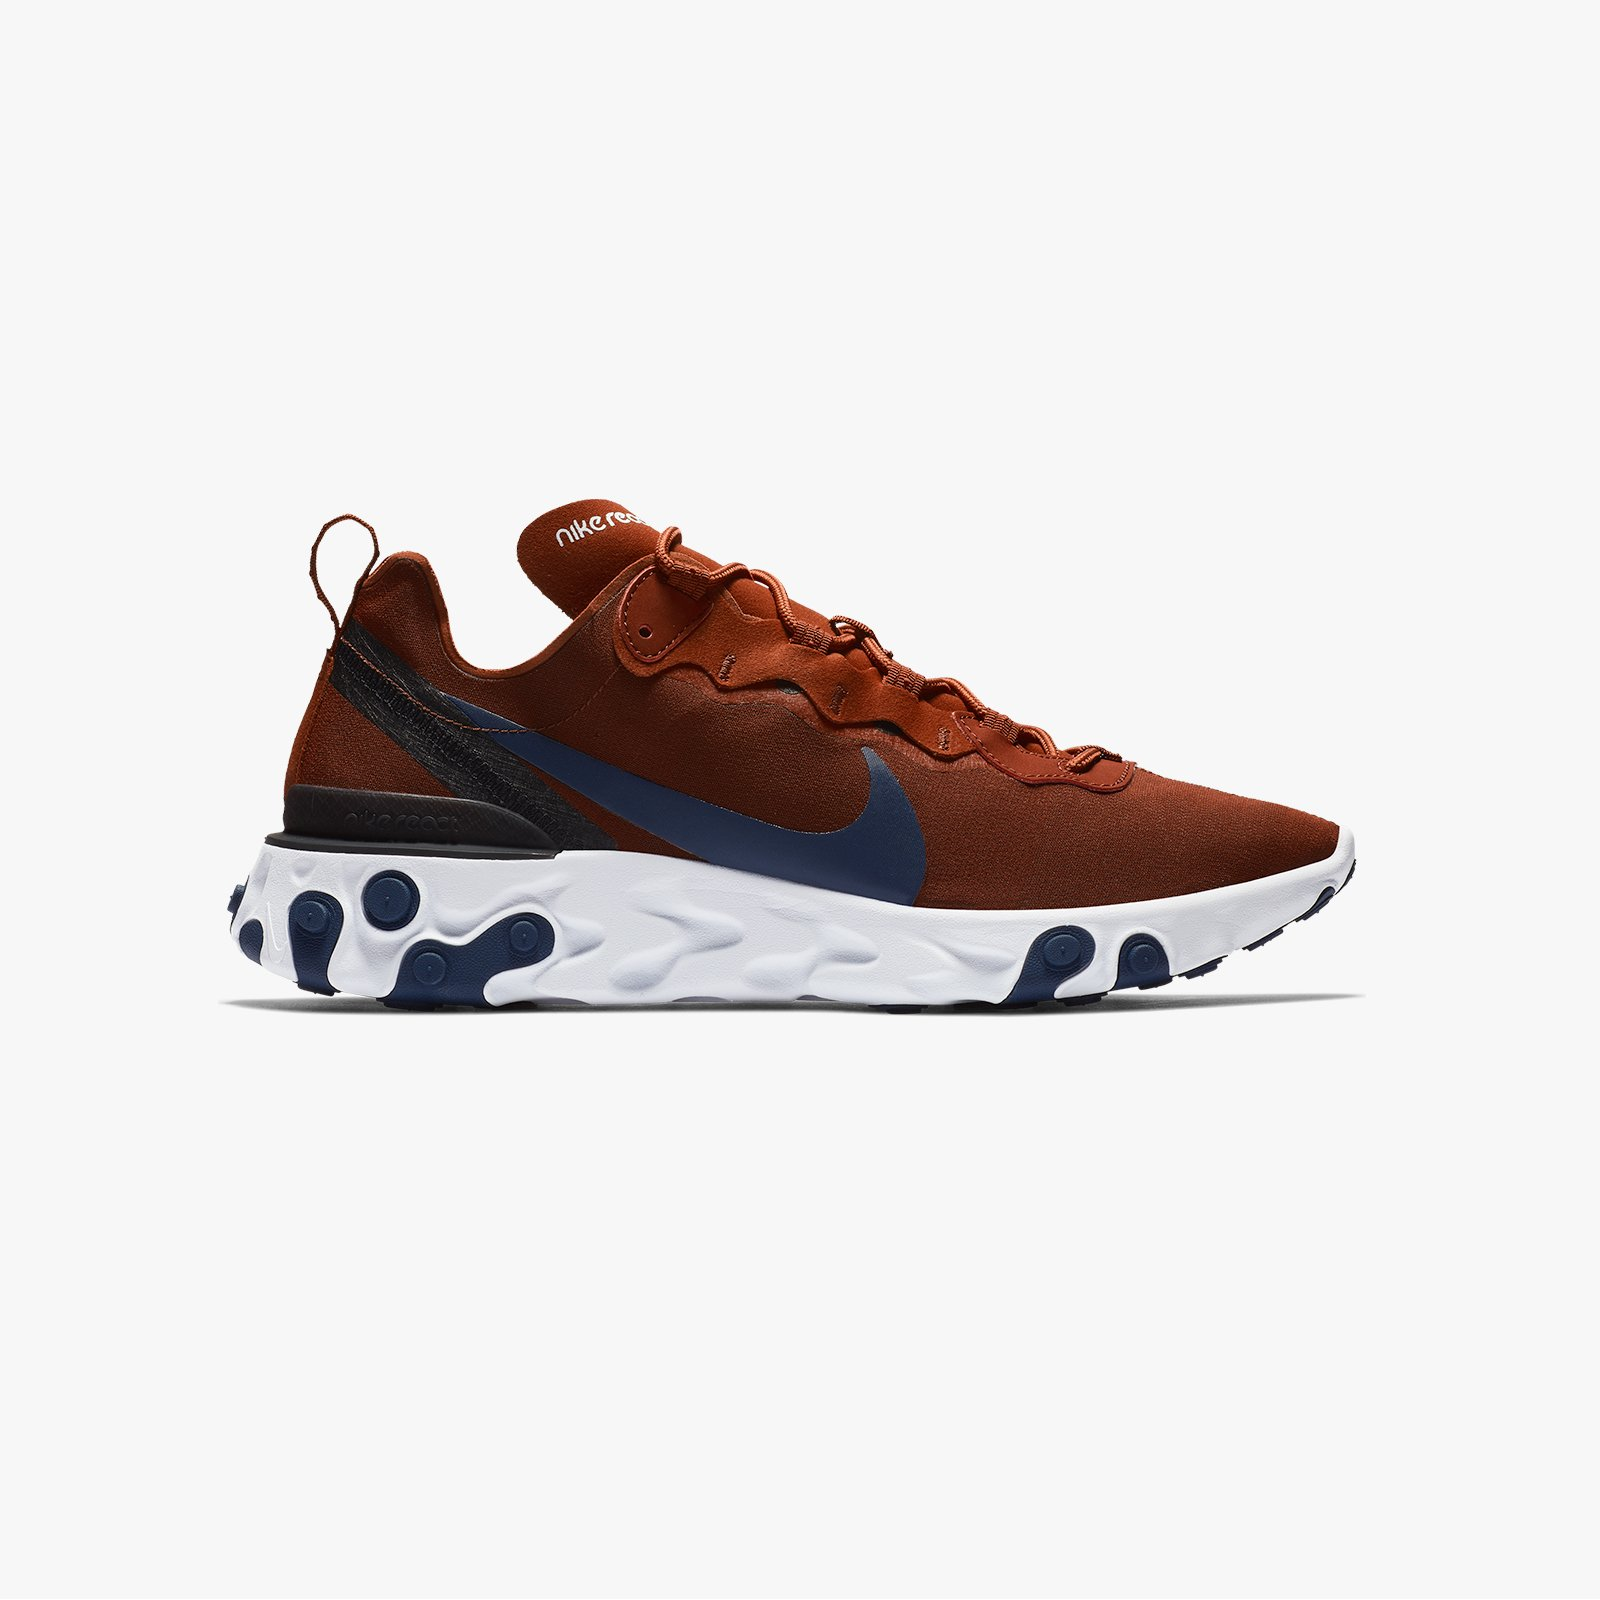 Nike React Element 55 - Bq6166-600 - Sneakersnstuff  0a5a91b37